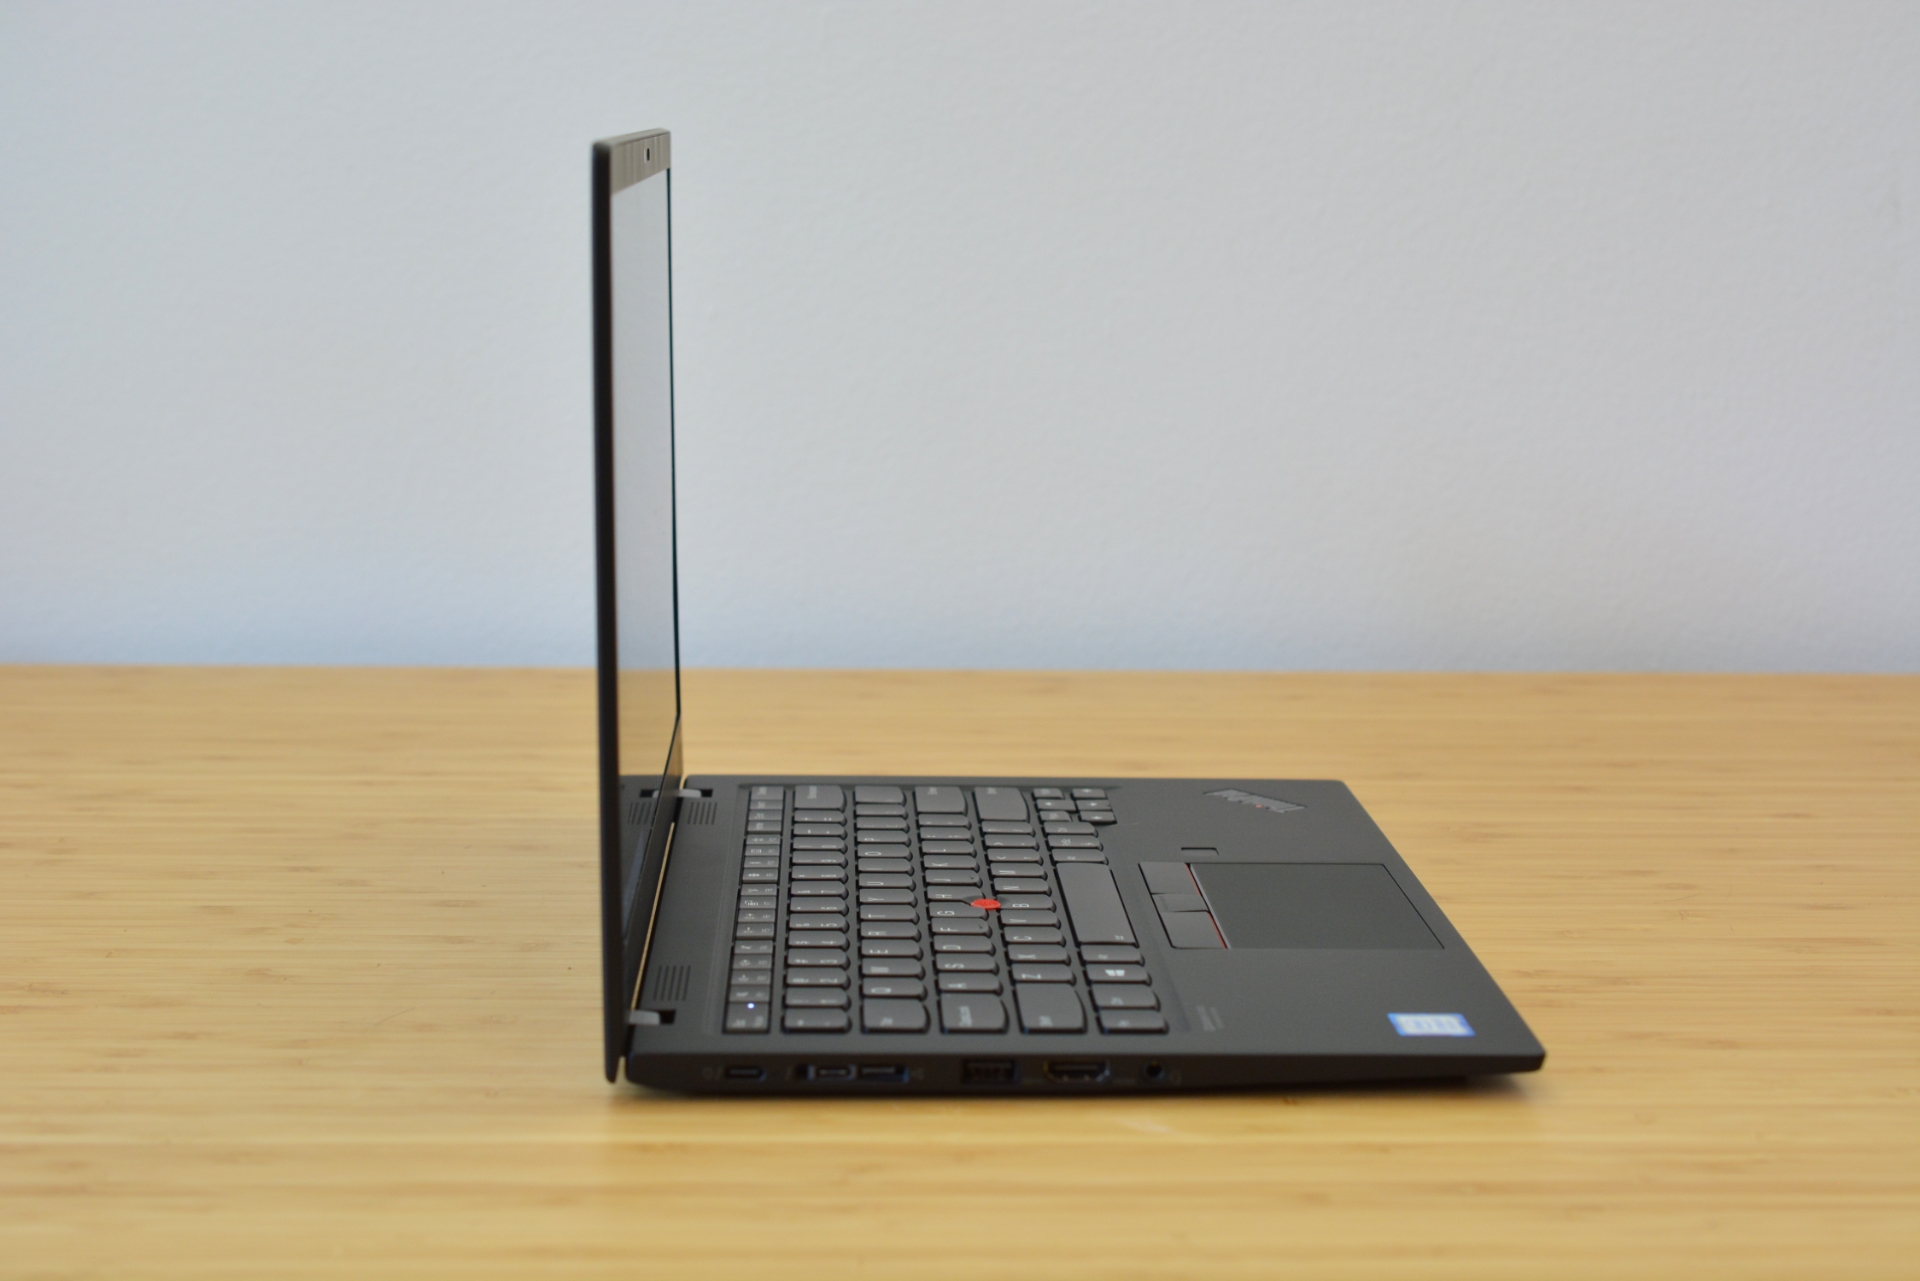 The ThinkPad X1 Carbon 7th-gen.